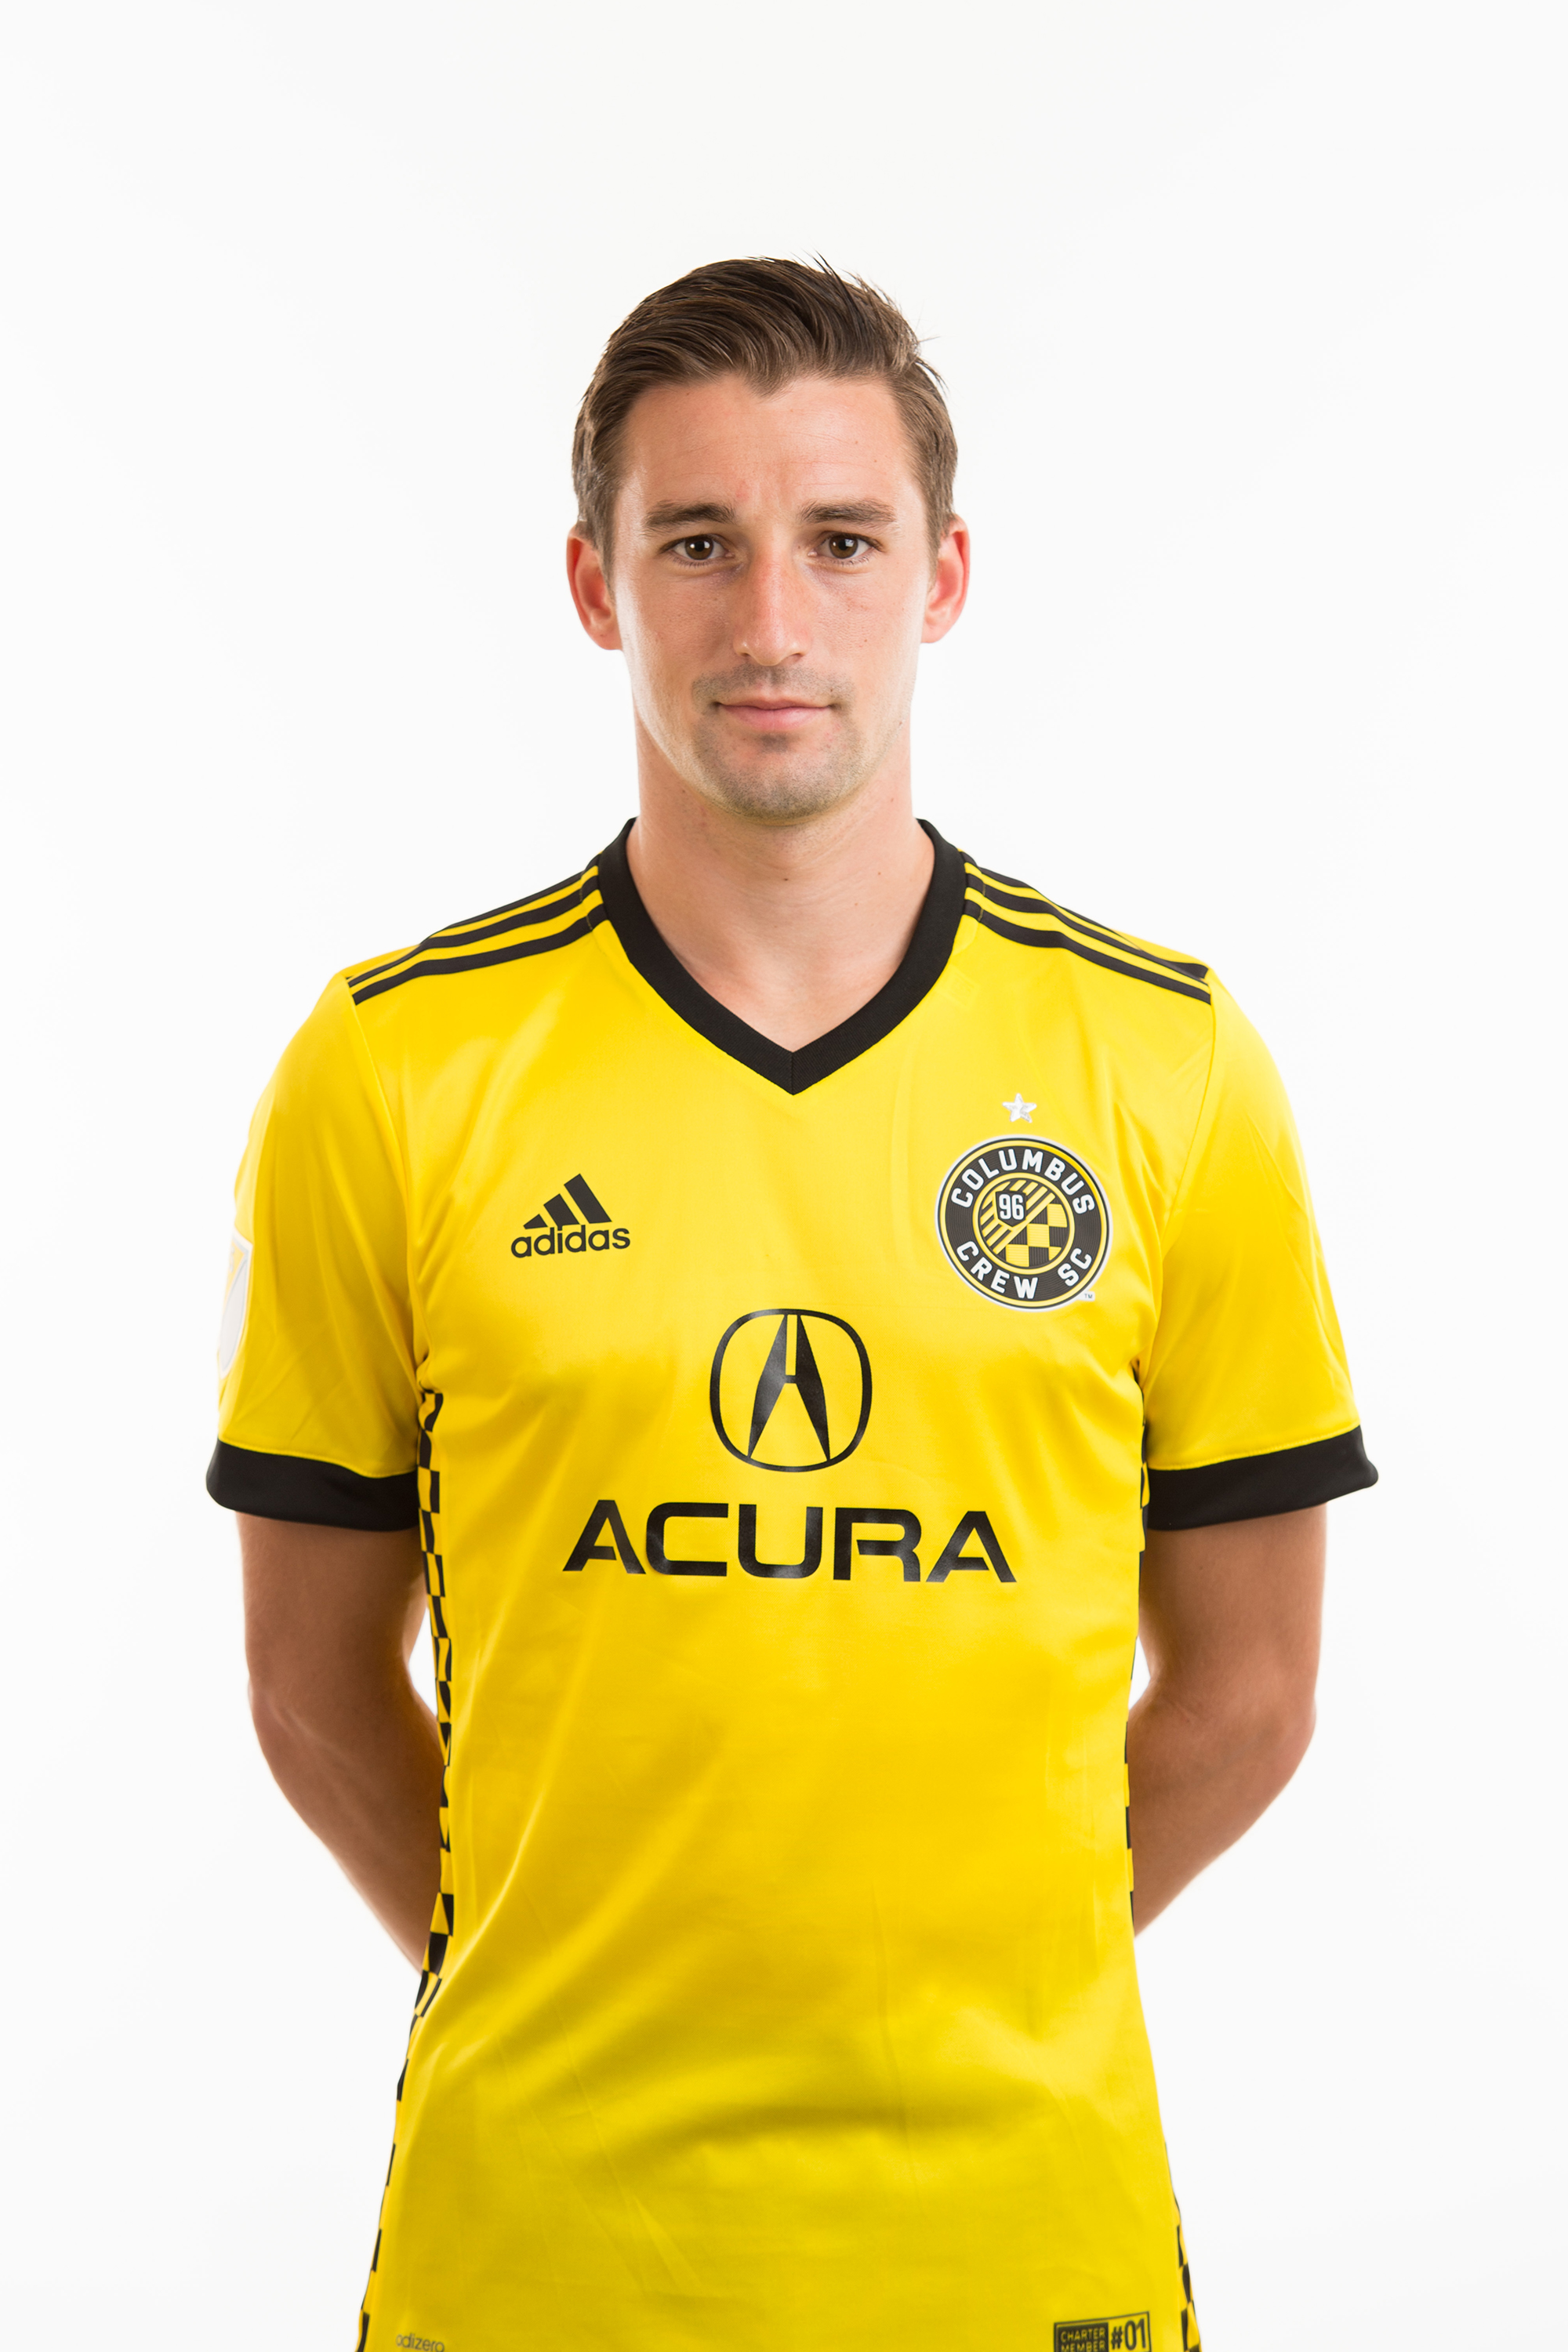 Ethan Finlay is currently in his sixth season with Columbus Crew SC. A midfielder, Finlay was selected 10th overall in the 2012 MLS SuperDraft by the Black & Gold. Prior to joining Crew SC, the Marshfield, Wisconsin native played soccer for Creighton University, where he led the Bluejays to their first College Cup since 2002 his senior year. At the international level, Finlay has earned three caps with the U.S. Men's National Team. A 2015 Eastern Conference Champion, Finlay is also one of only six players to have recorded at least 30 goals and 30 assists for Crew SC in regular-season action.